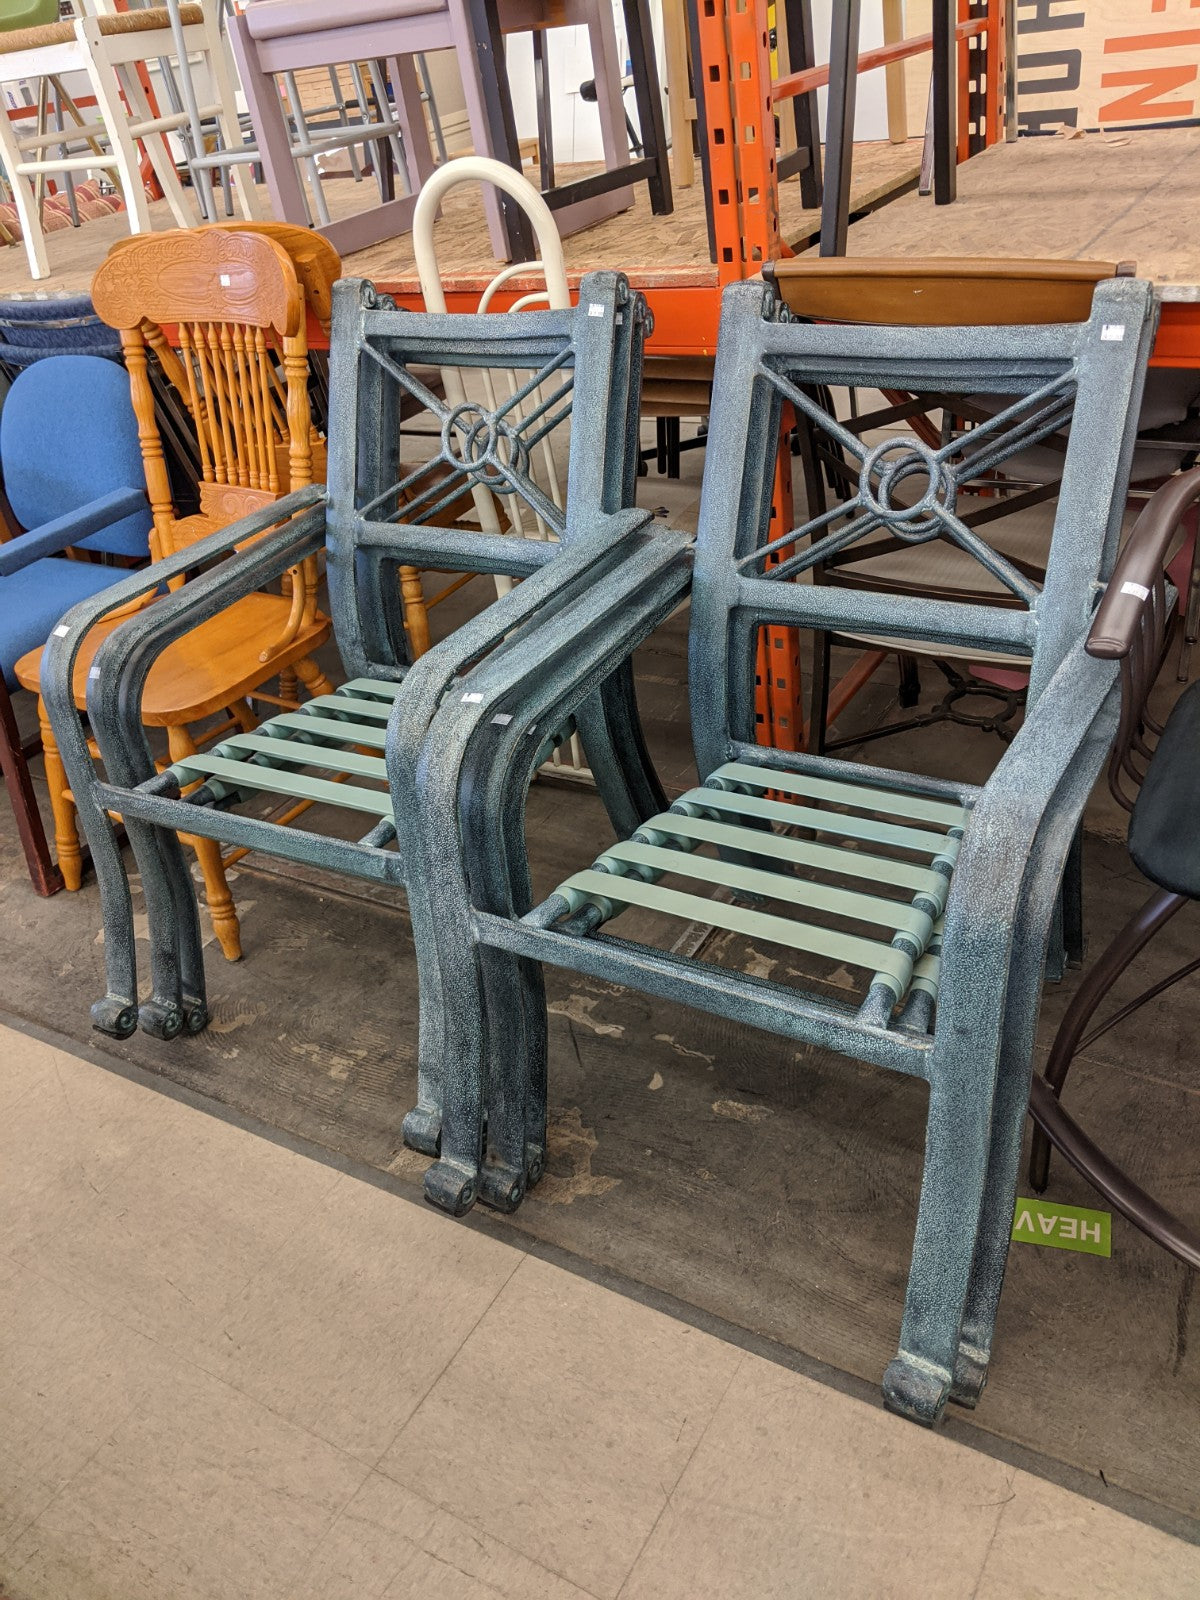 Set of 6 outdoor chairs